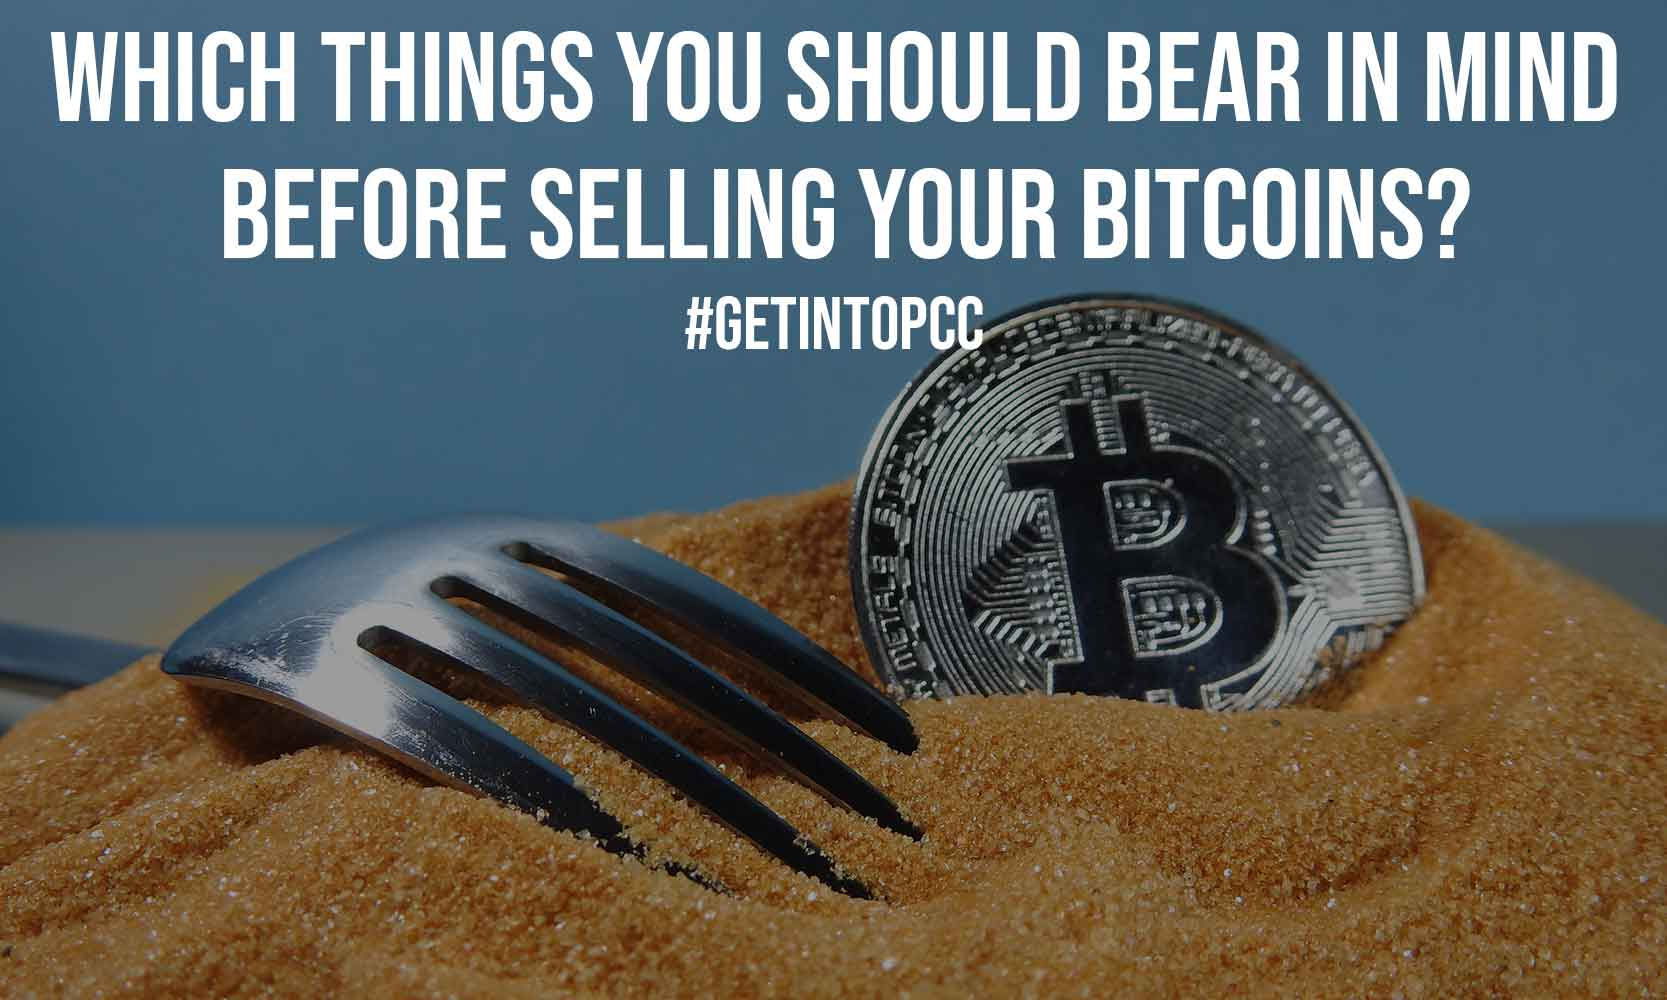 Which Things You Should Bear In Mind Before Selling Your Bitcoins